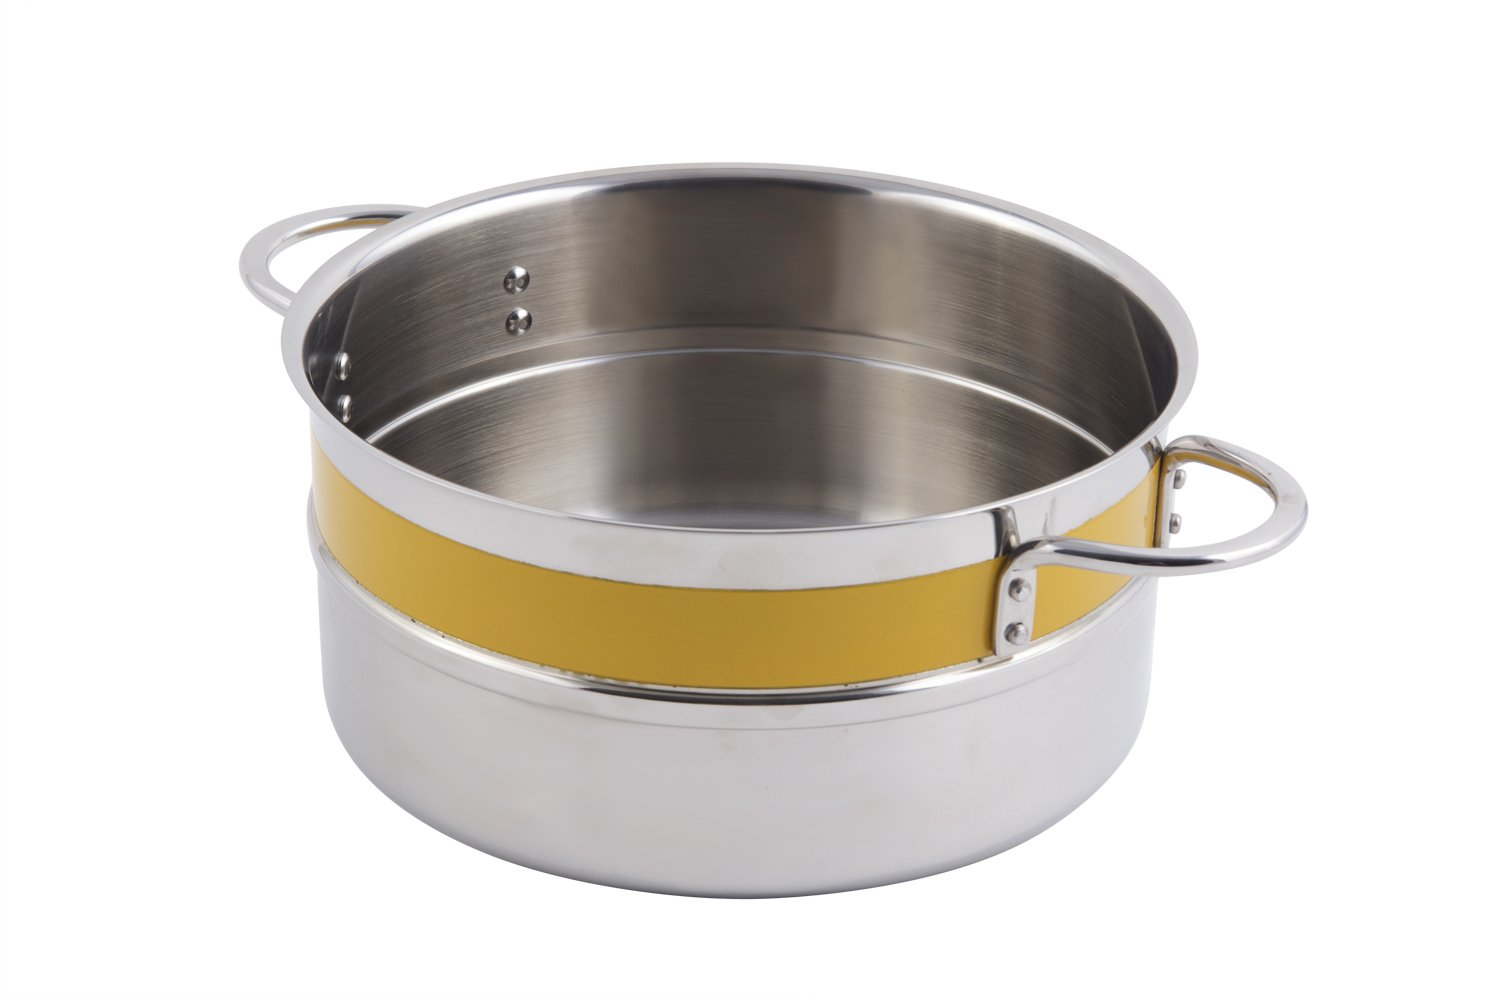 Bon Chef 62300NC Stainless Steel Classic Country French Collection Single Wall 1/2 Color Pot with Riveted Handle, 2.3-Quarts Capacity, 7-3/4'' Diameter x 3-1/2'' Height, Yellow